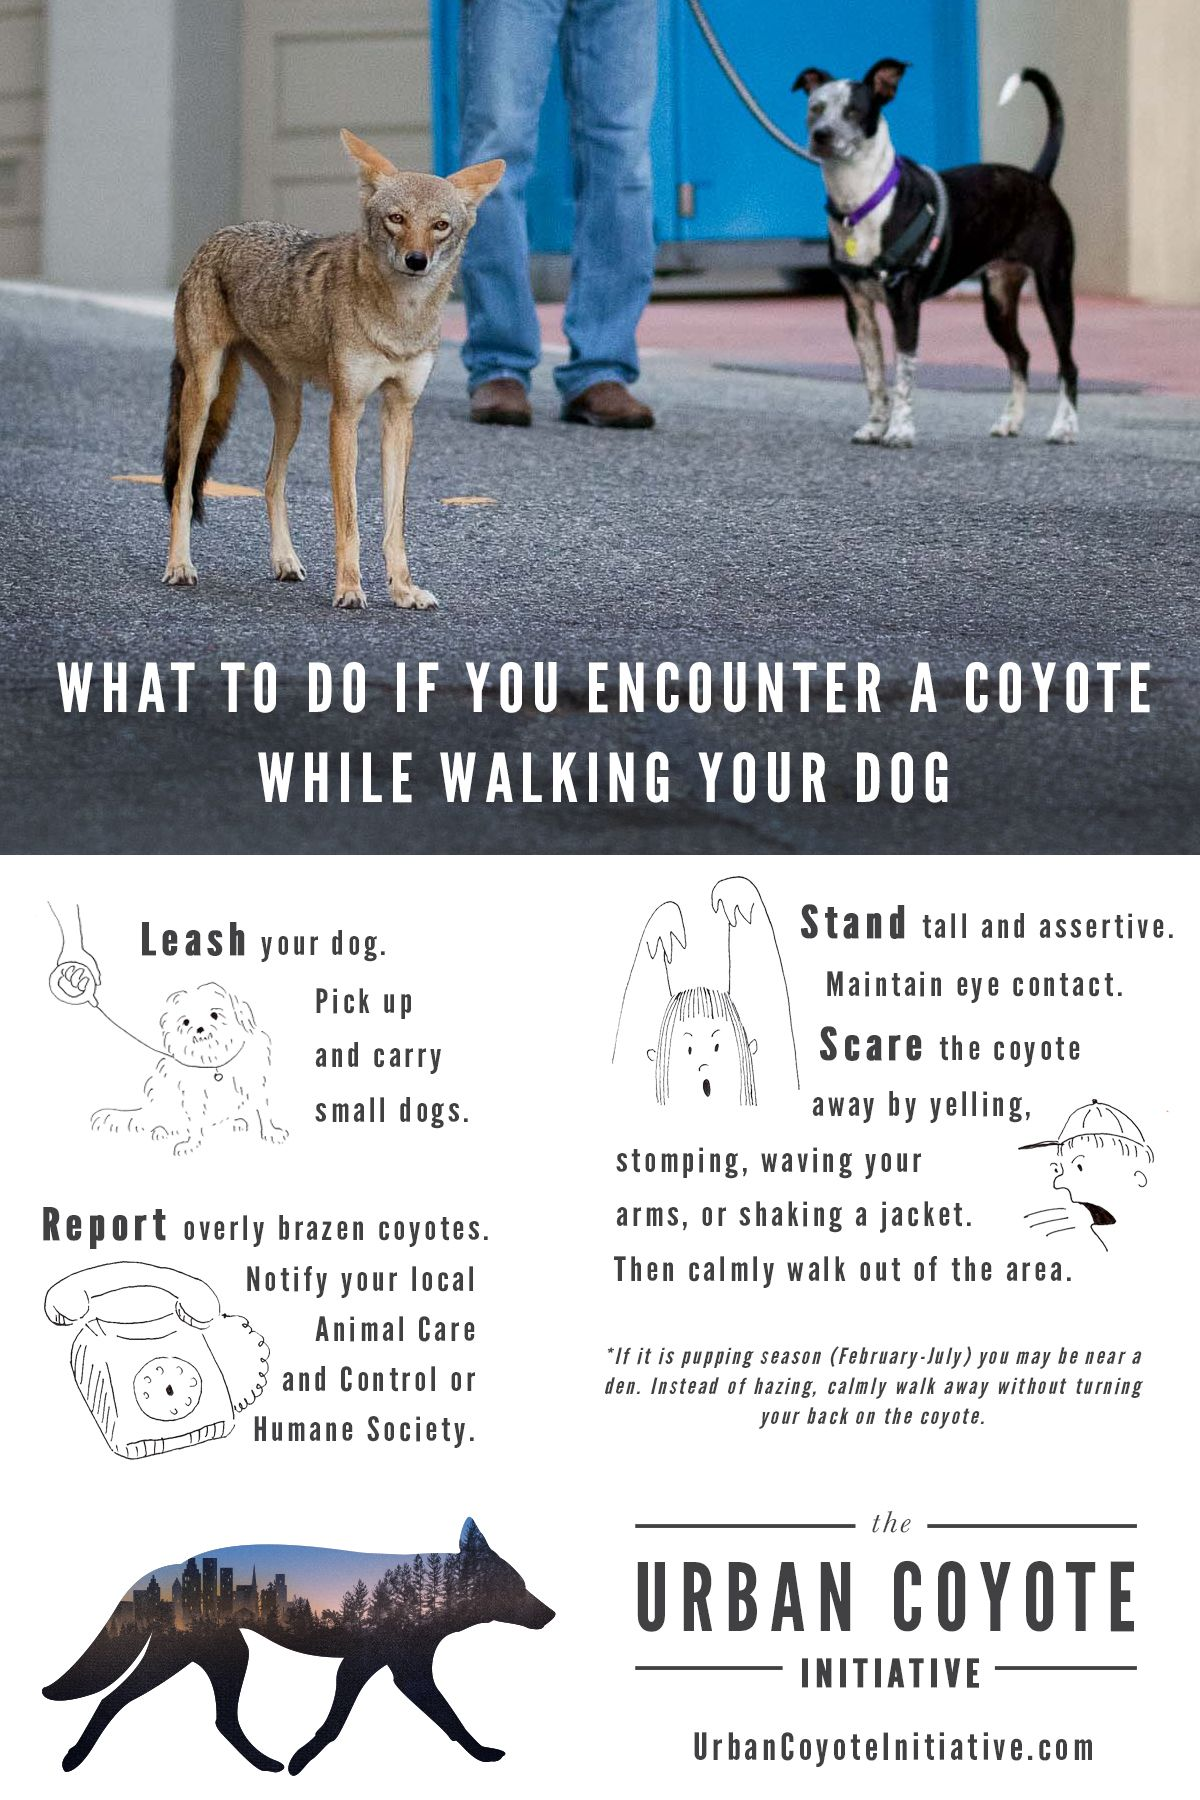 What To Do If You Encounter A Coyote While Walking Your Dog Urban Coyote Initiative Llc Dog Safety Your Dog Coyote